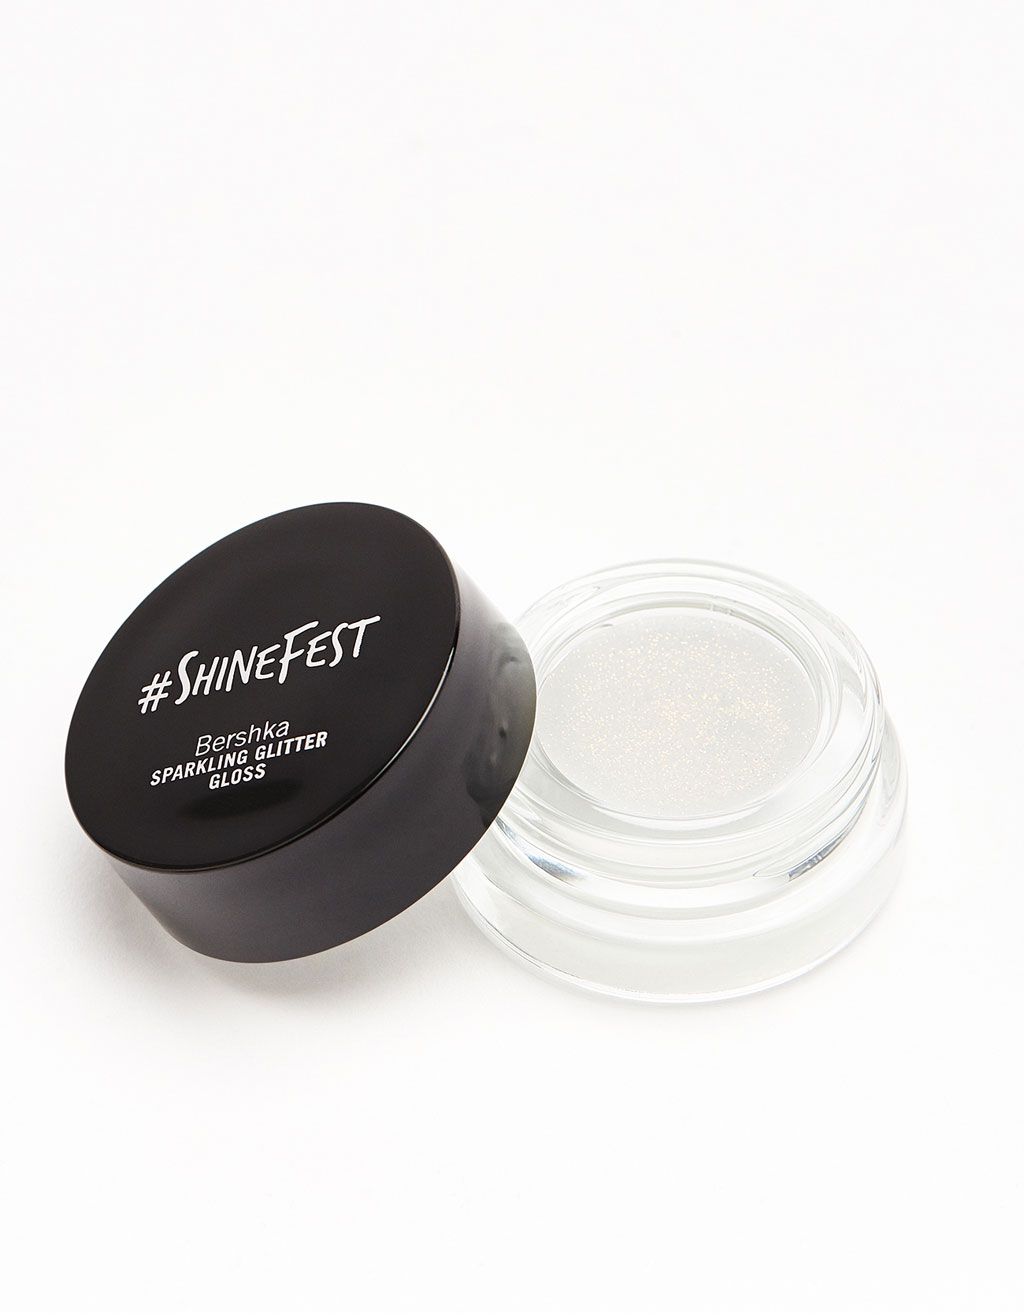 #shinefest Glitter lip gloss